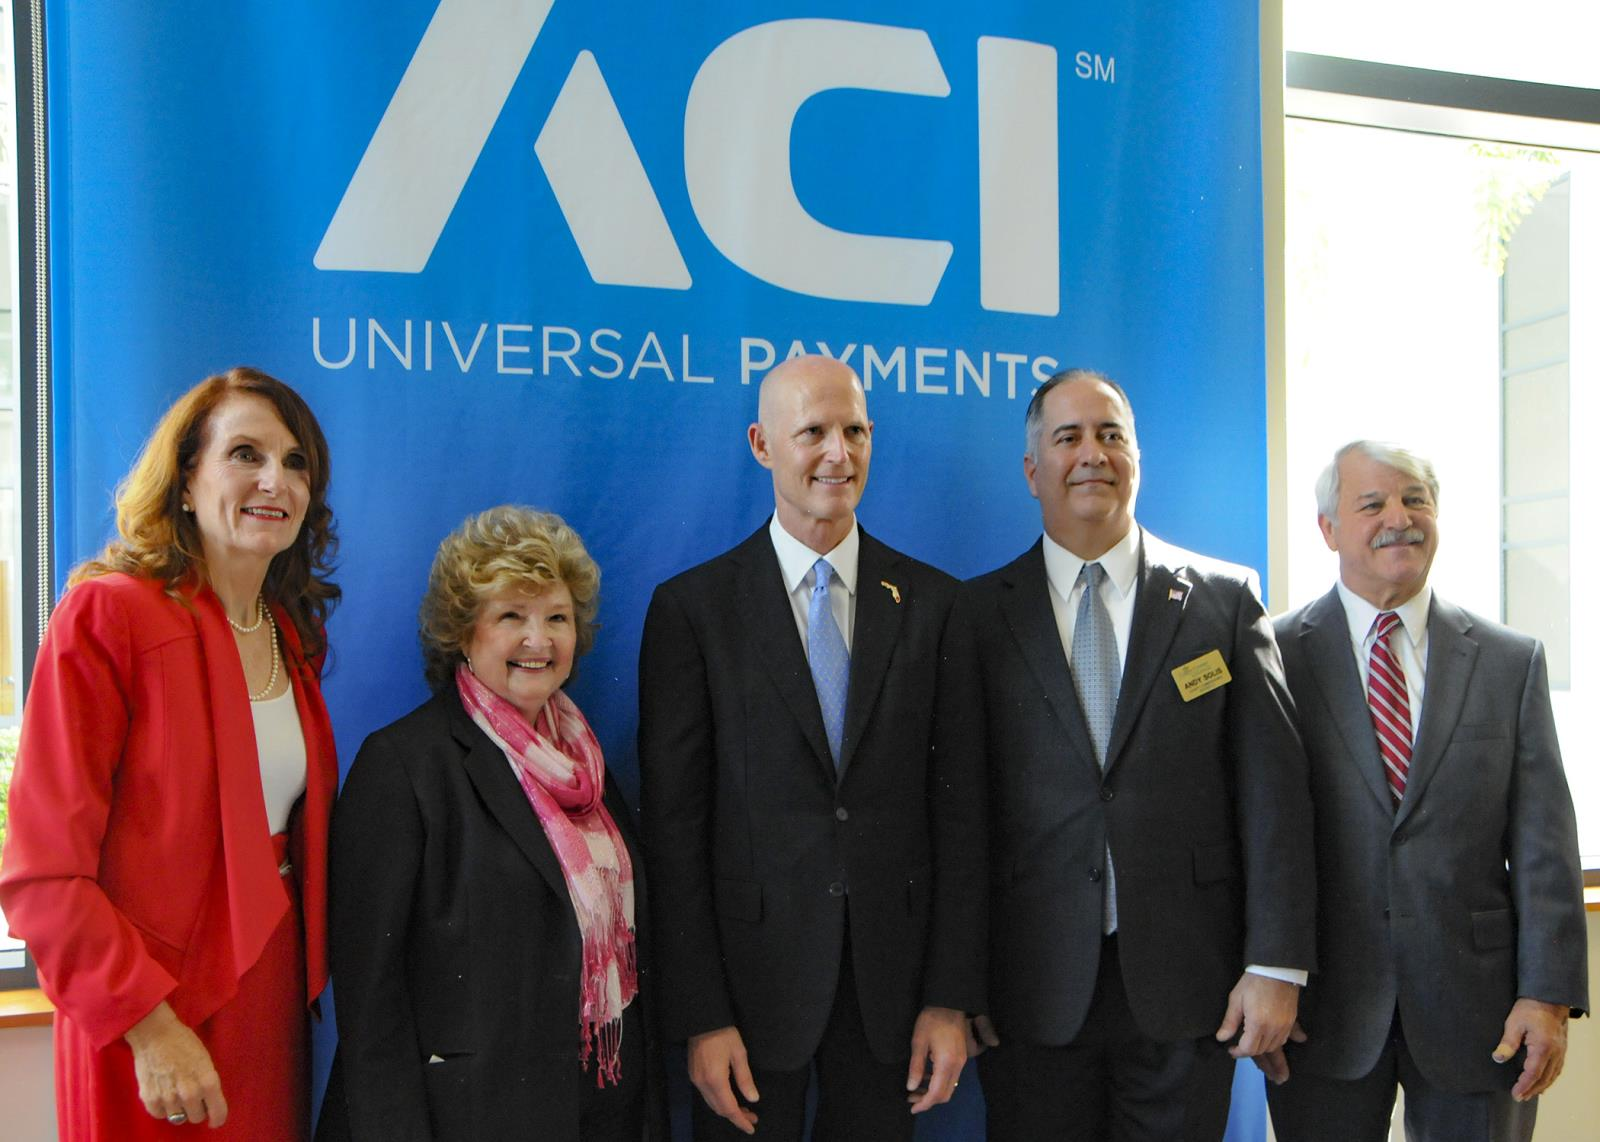 Commissioners Taylor, Fiala, Solis and Saunders with Governor Rick Scott at ACI Universal Payment Company Ribbon Cutting